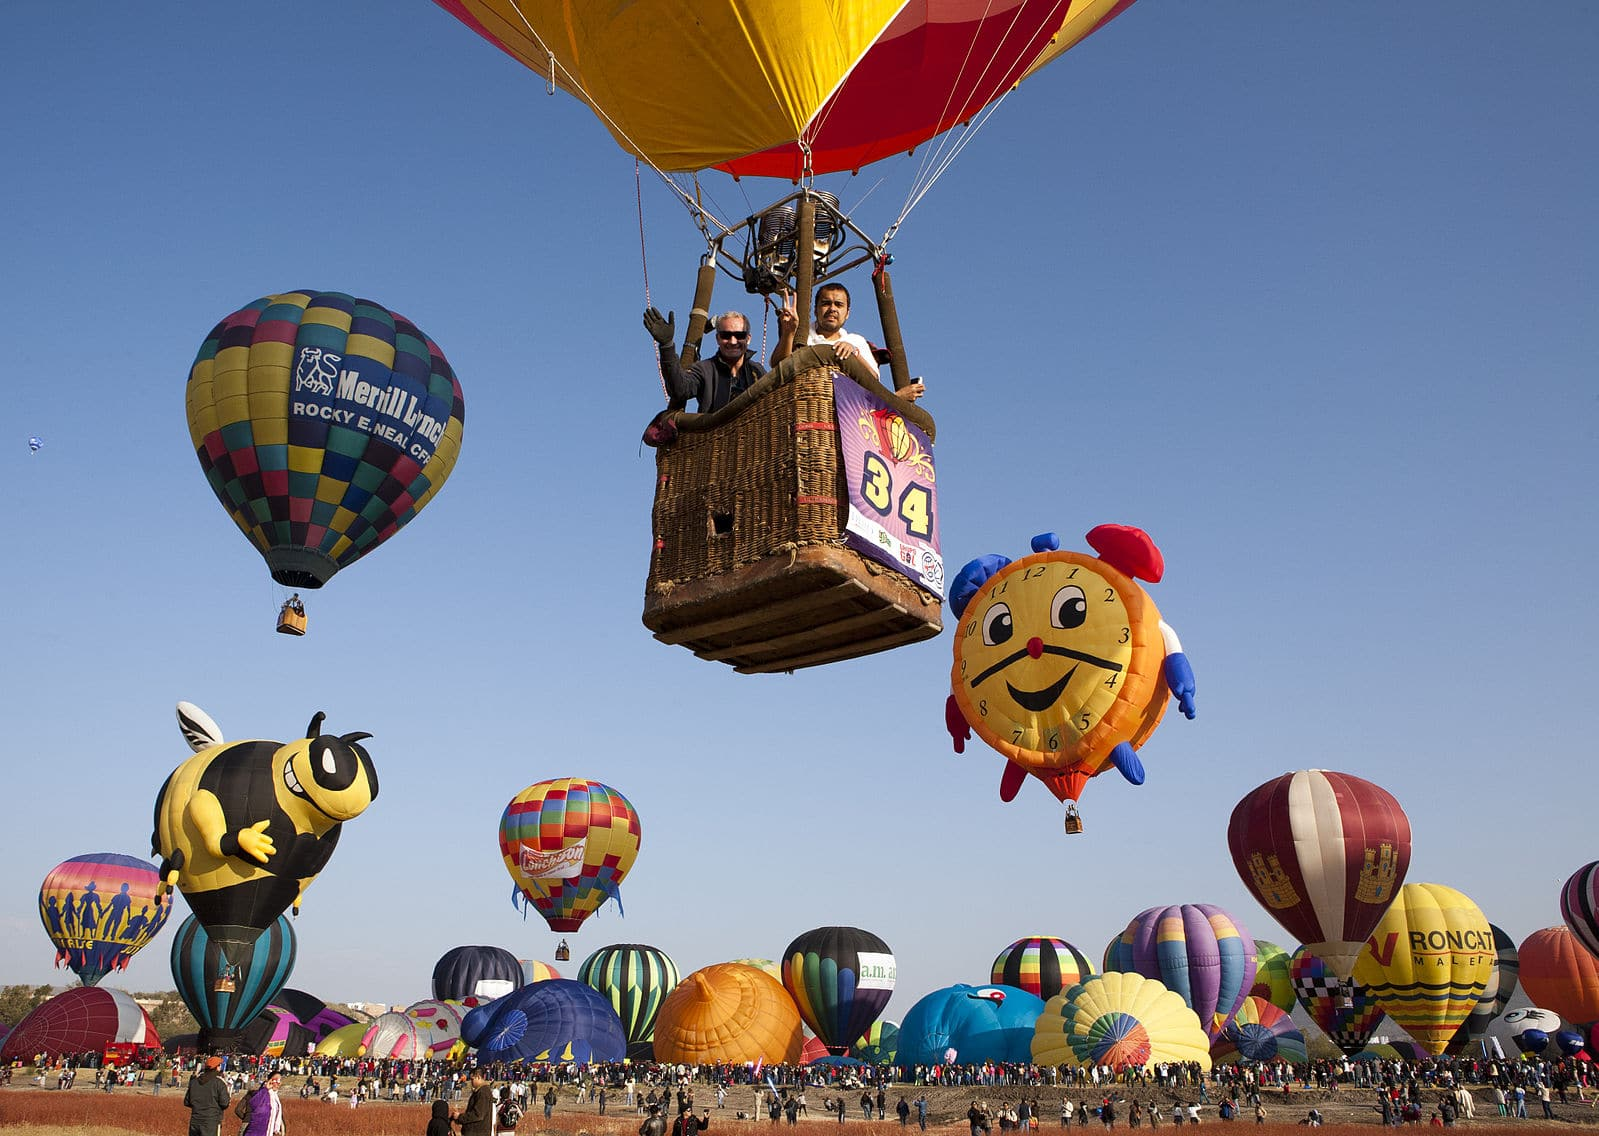 Most adventurous forms of transportation while traveling - Hot air balloon ride